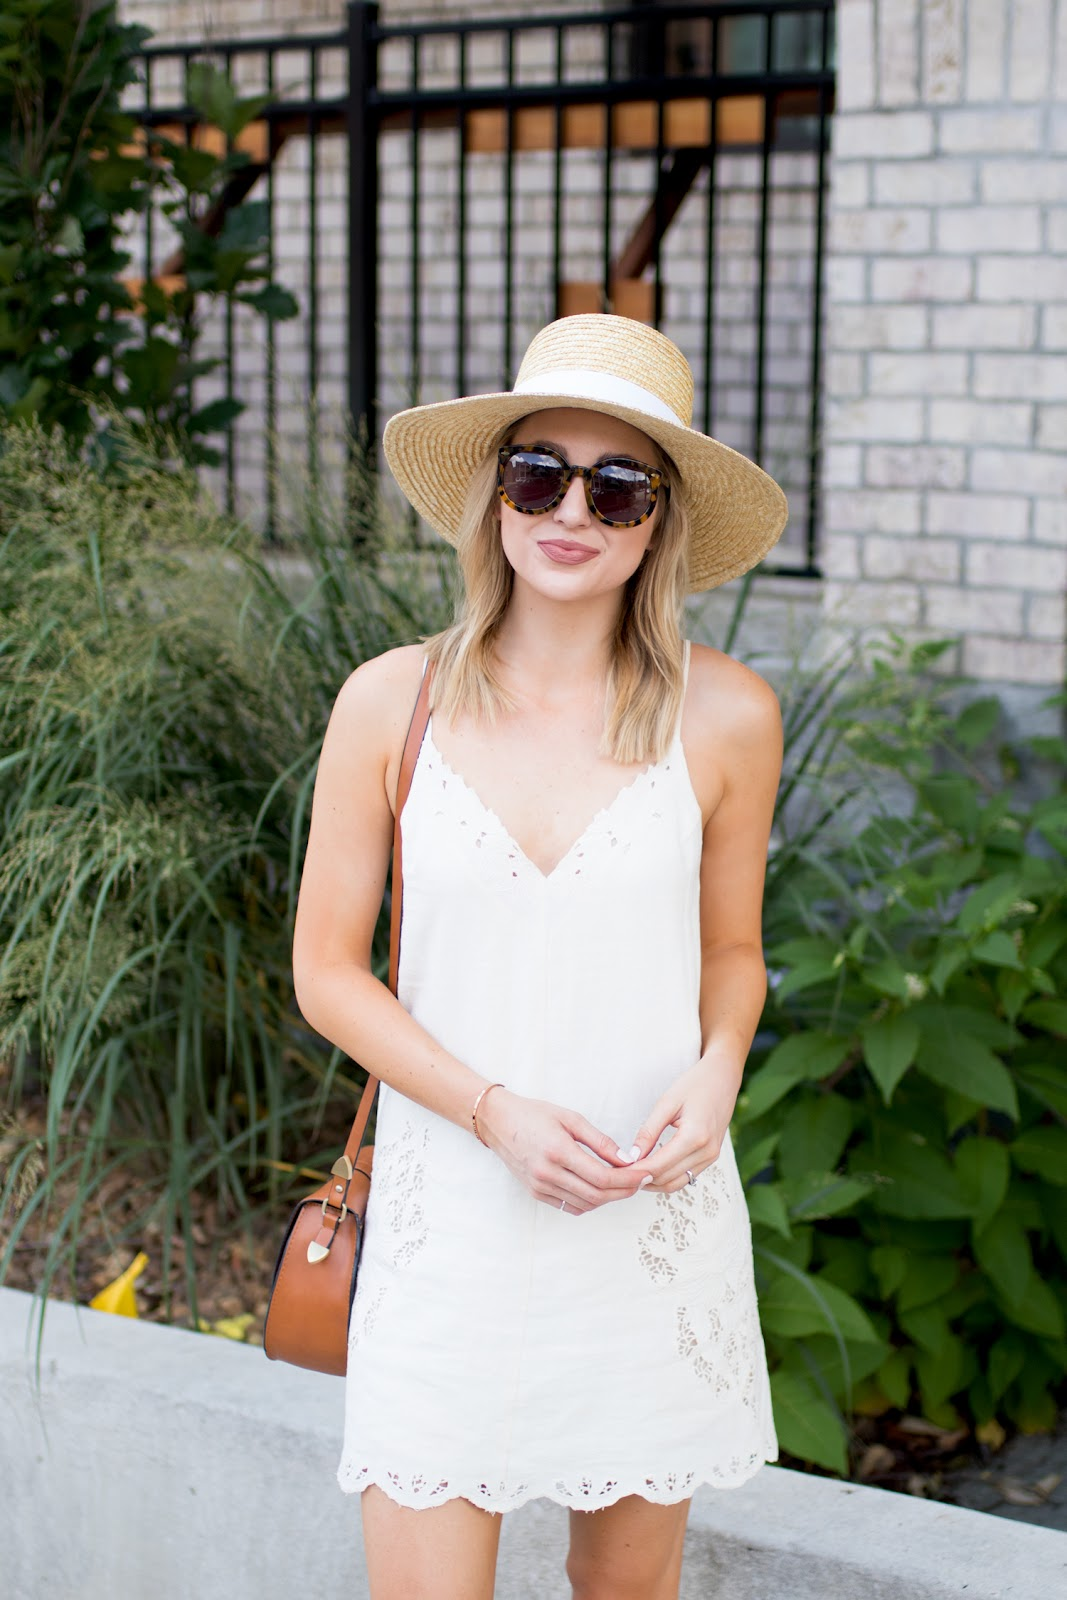 White sundress, sunglasses, wide brim hat